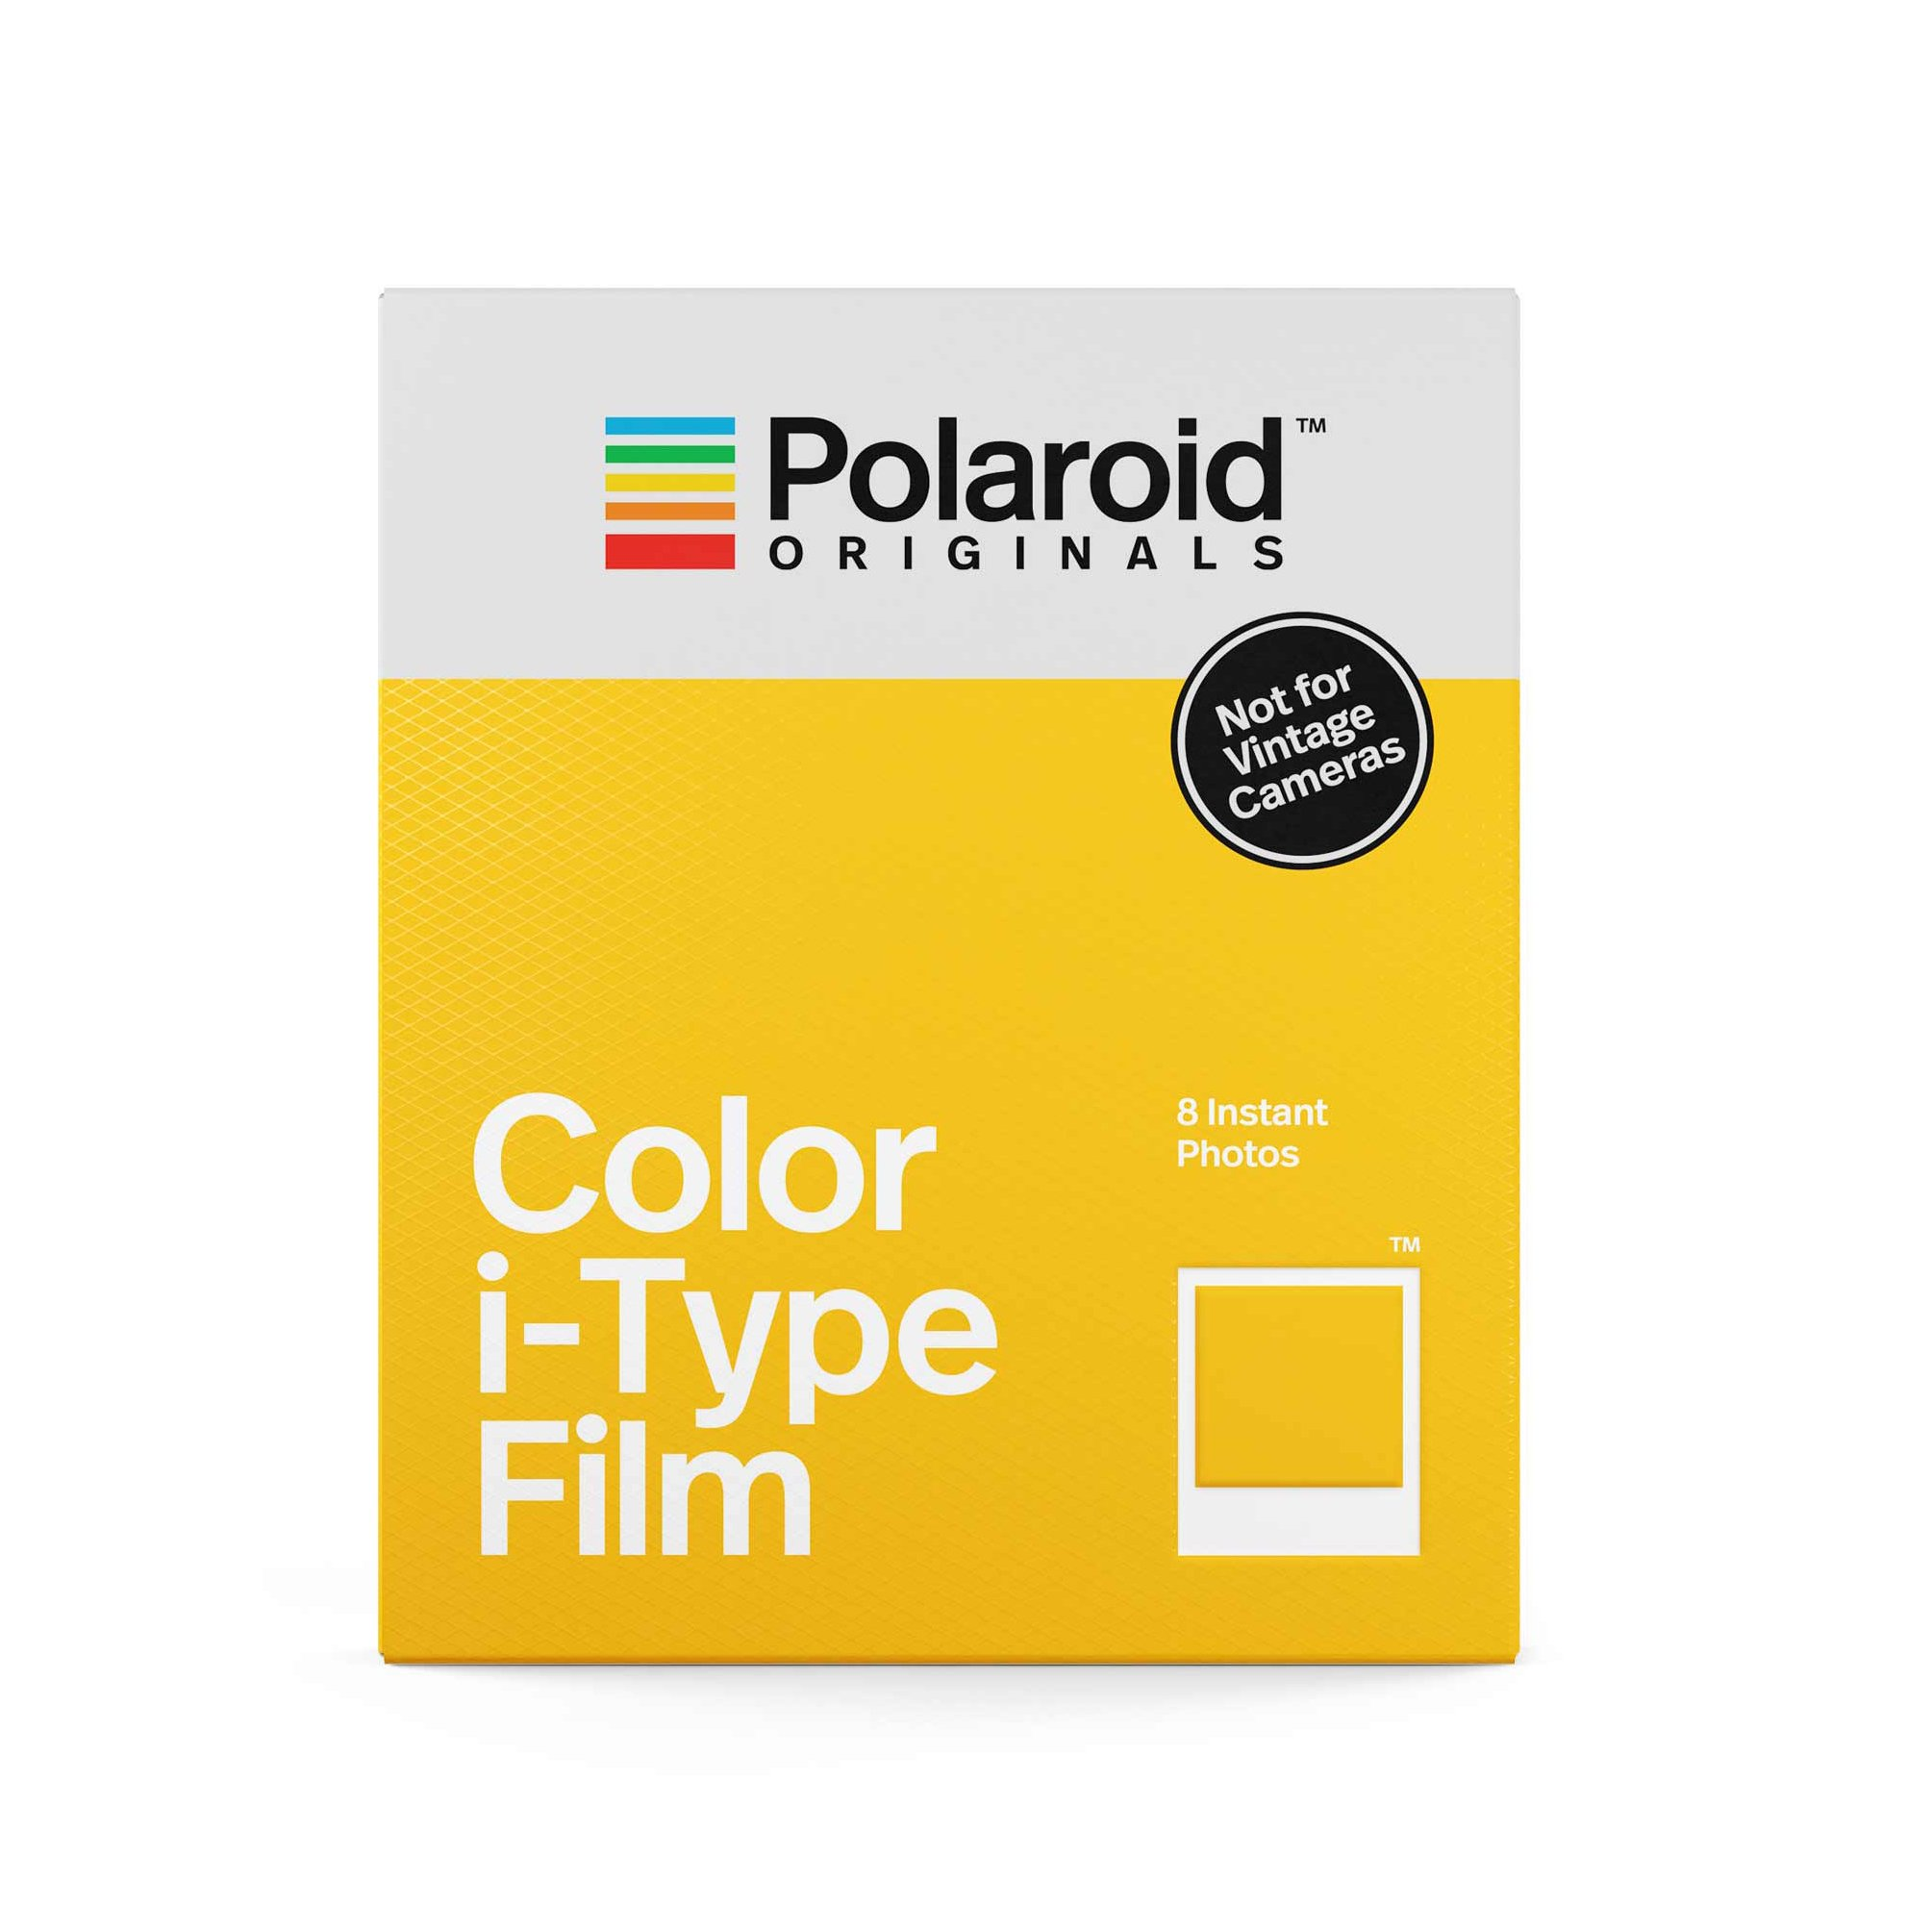 Polaroid Color I-type Film White